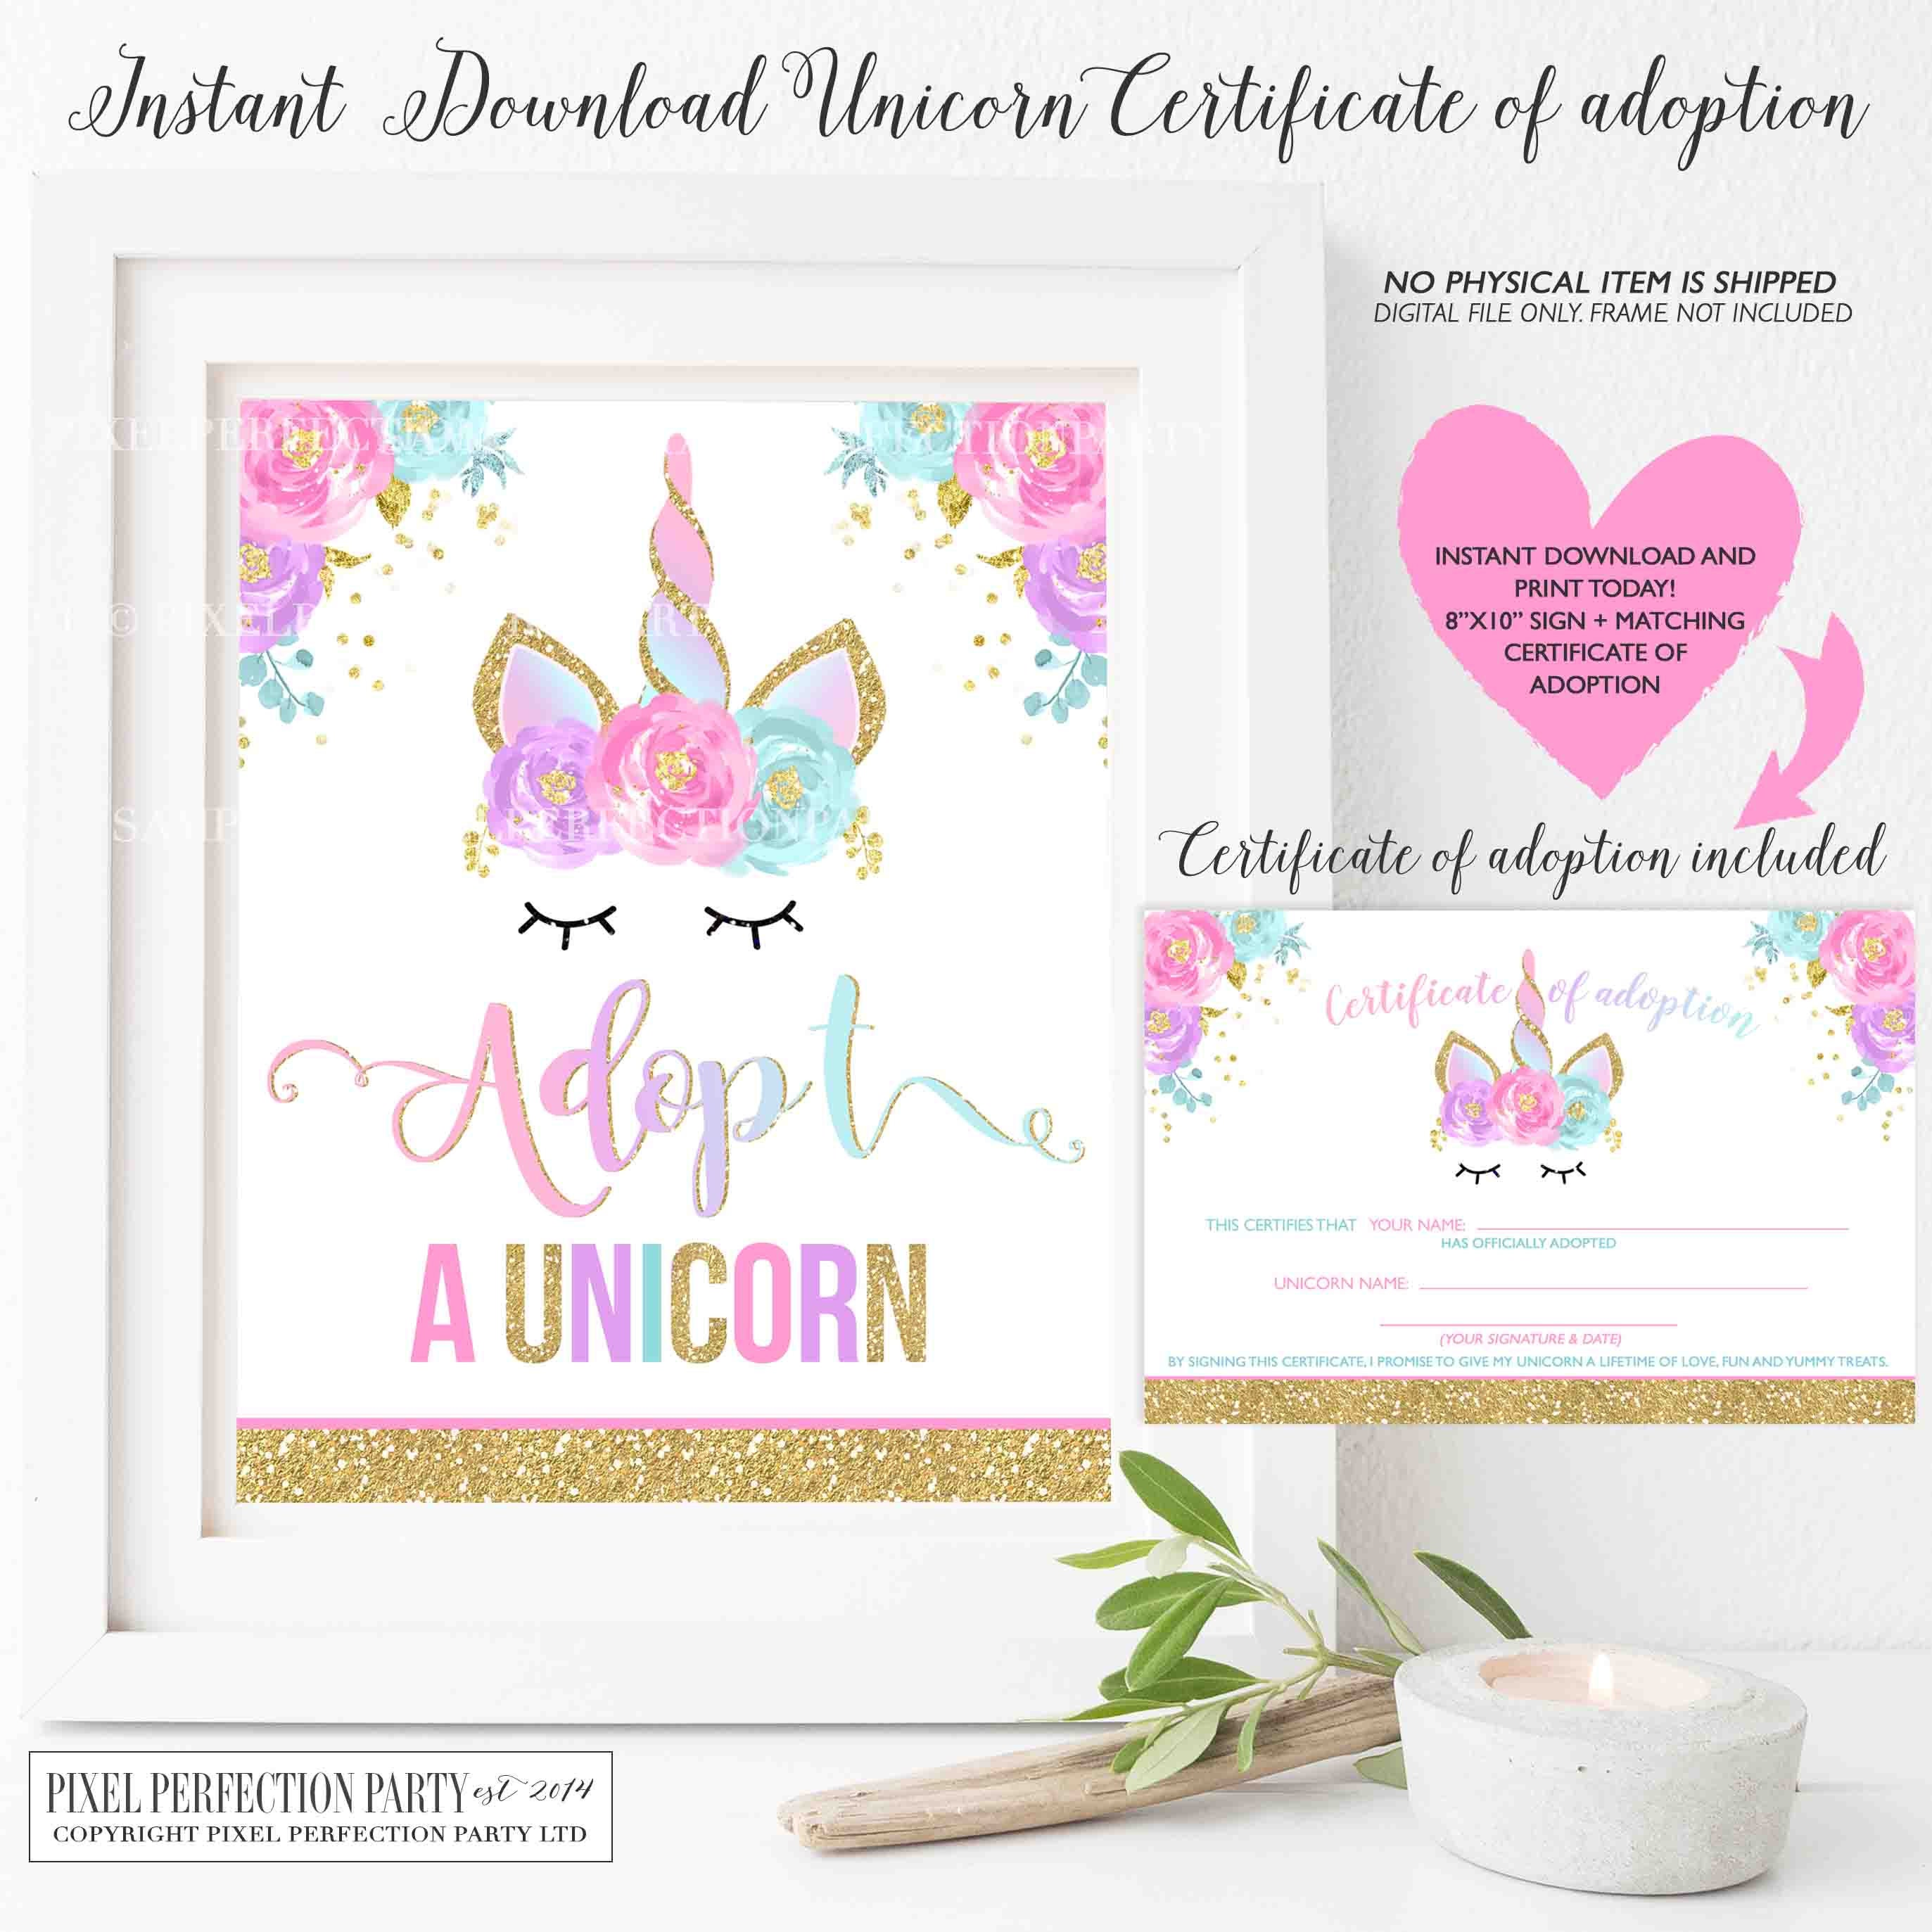 Unicorn Certificate Of Adoption Sign Matching Certificate Of